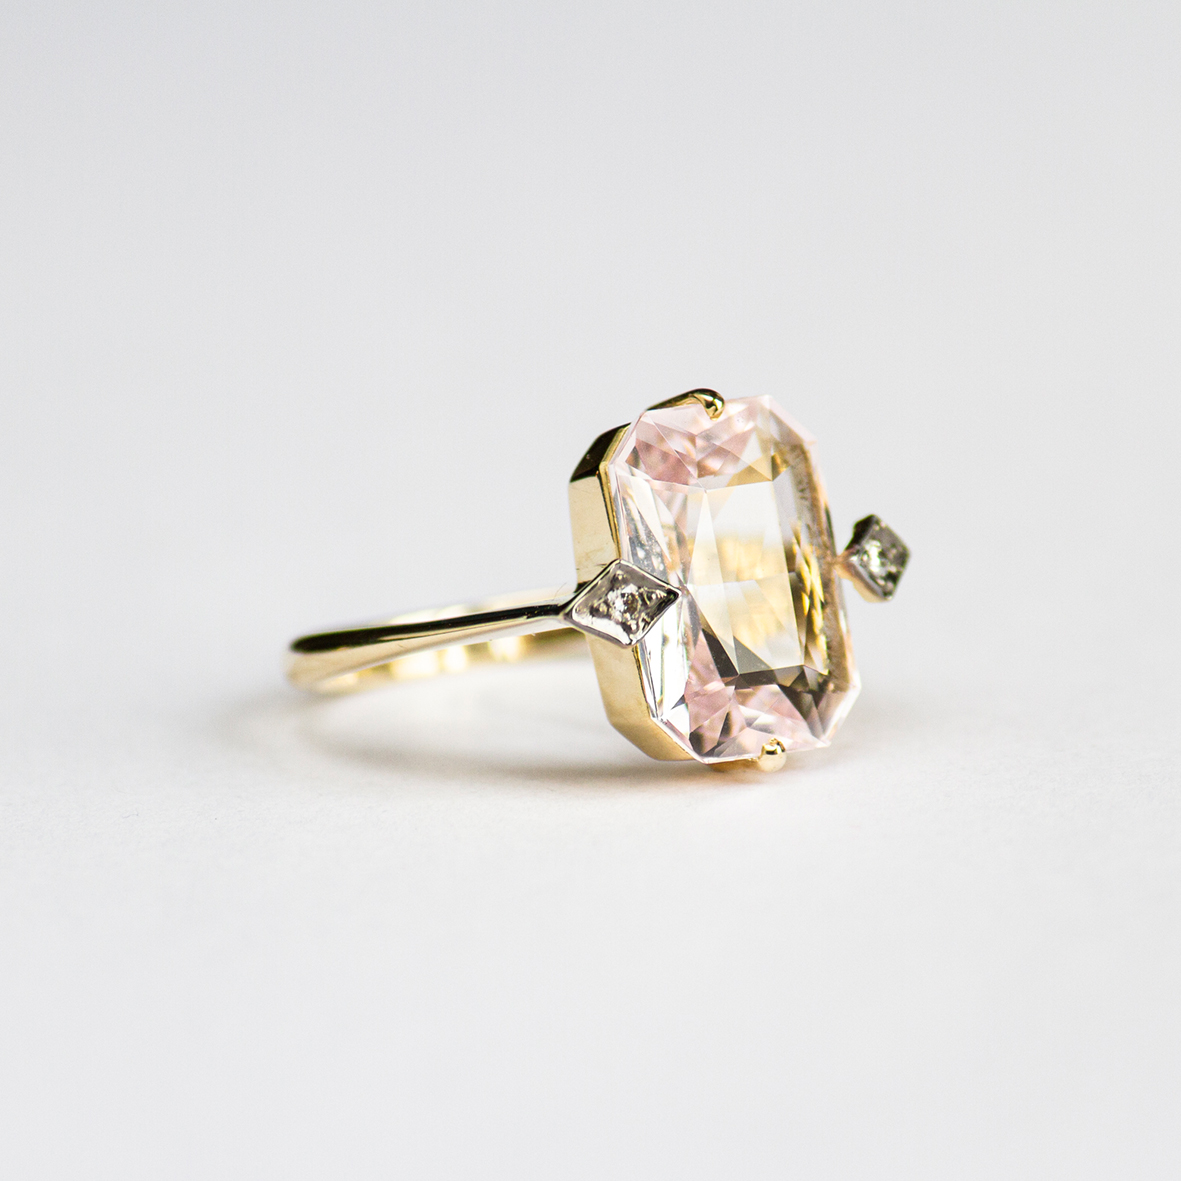 2. OONA_gems of ceylon_ficha2_morganite ring